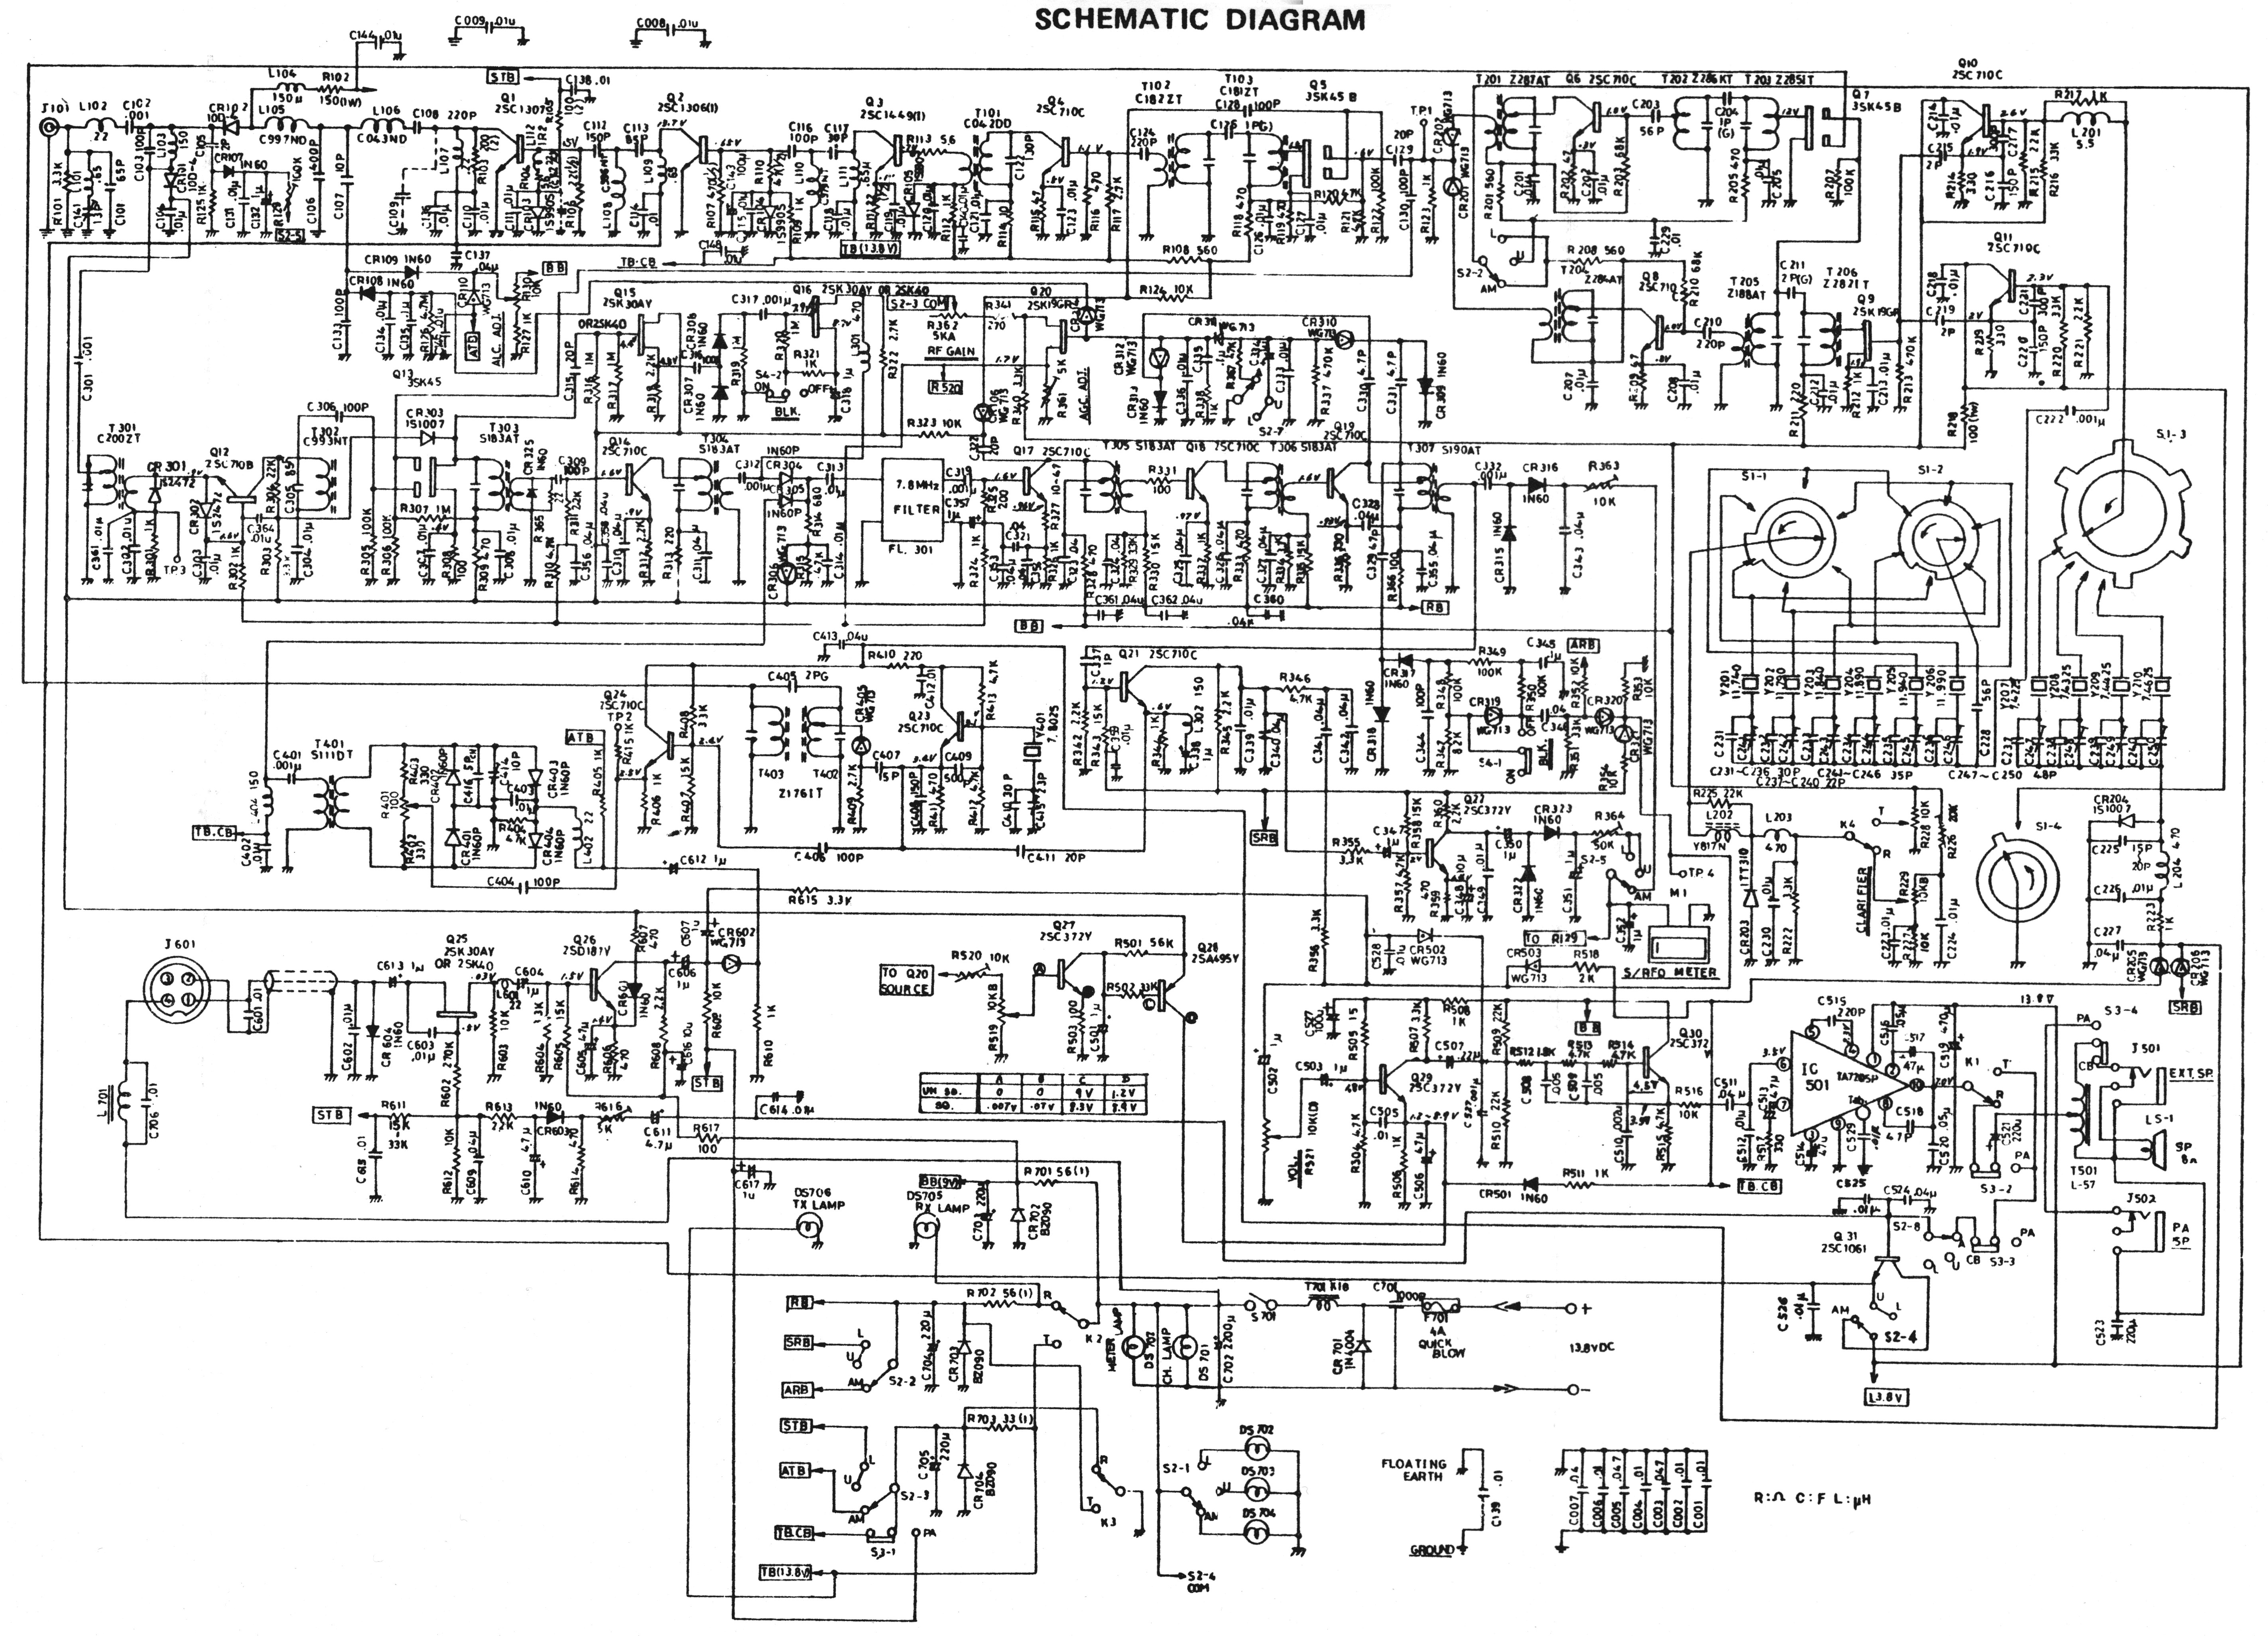 Unique Schematic Pcb Illustration - Everything You Need to Know ...